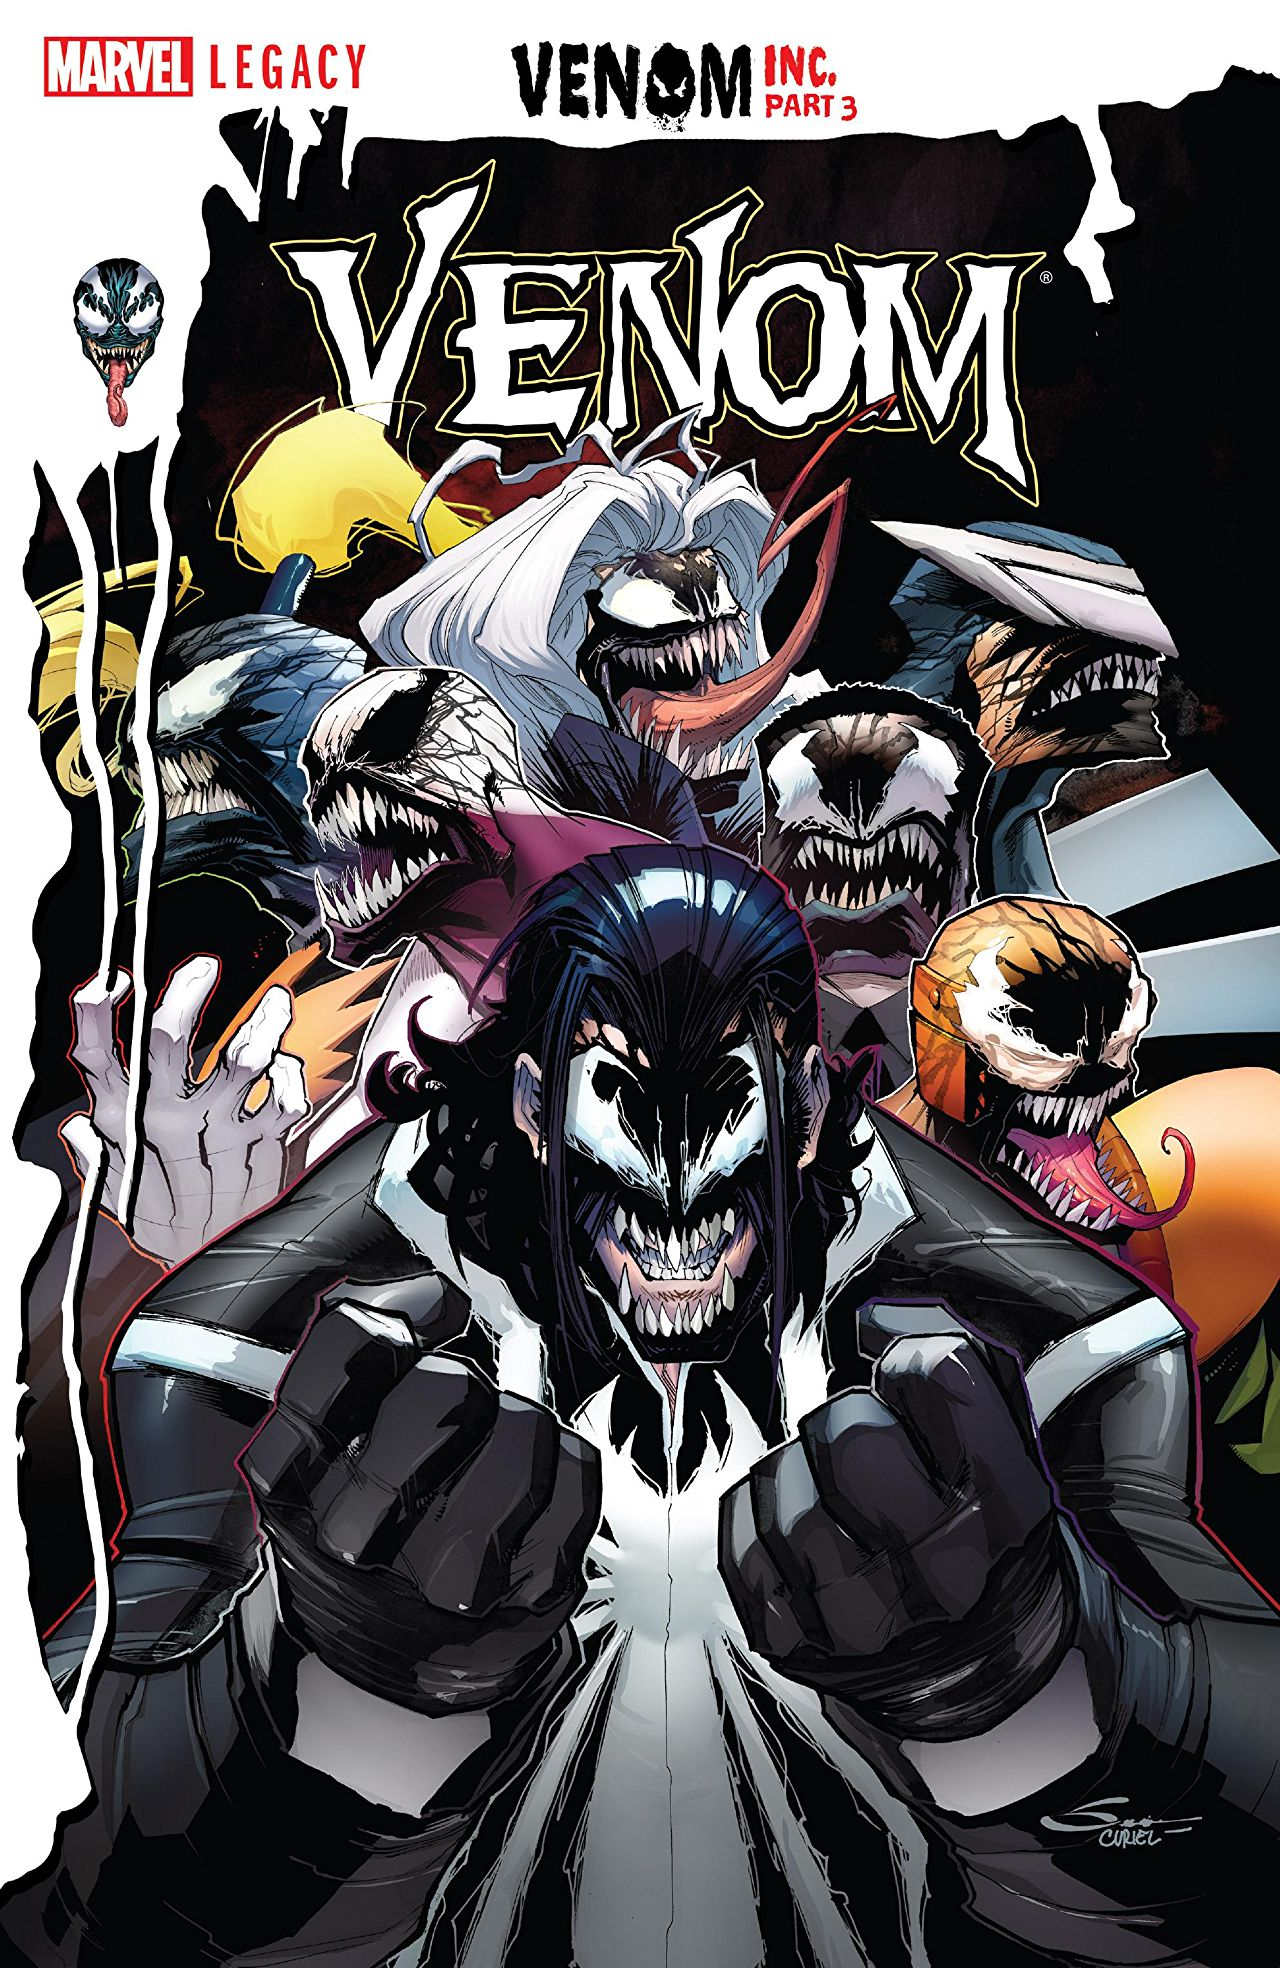 Venom 159 - Venom INC, Part 3